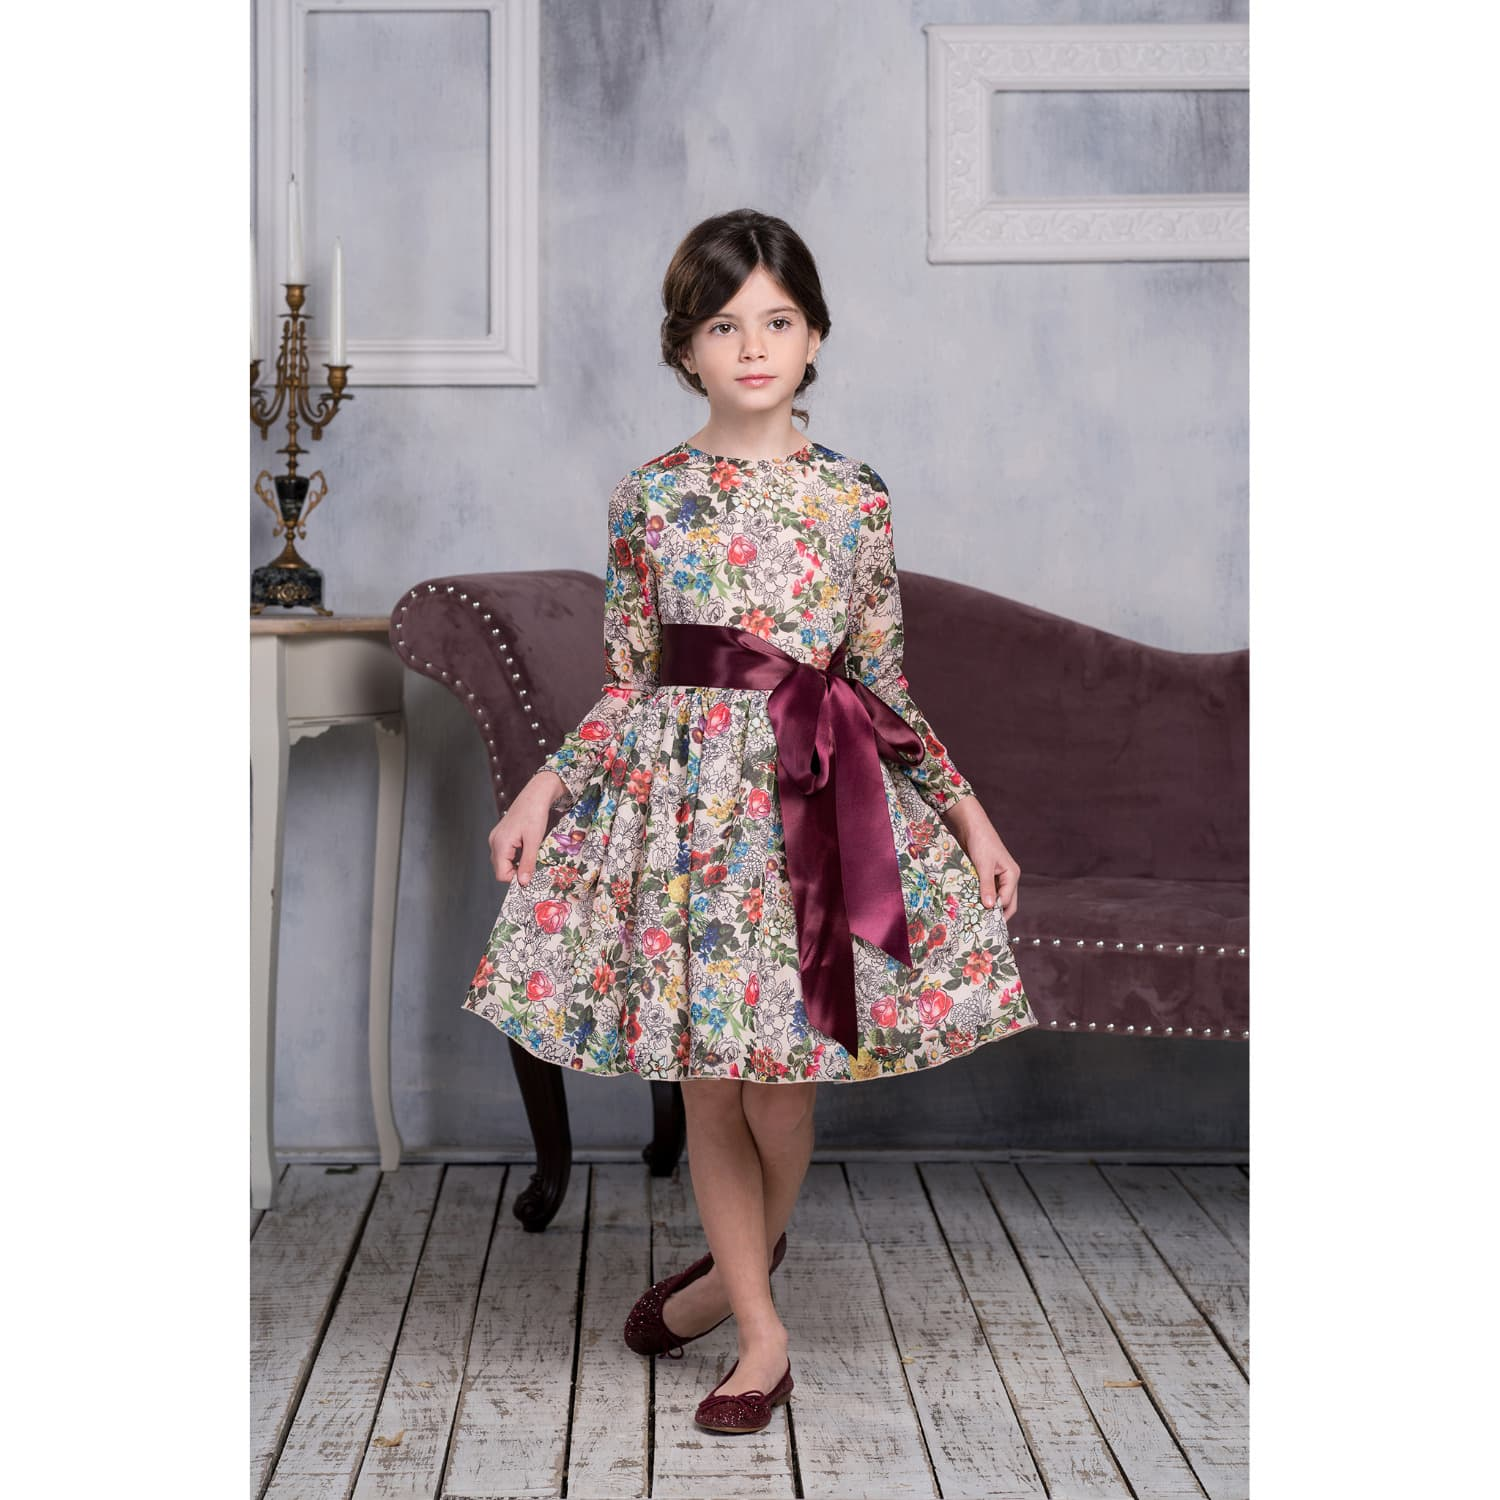 fac90435186c Ivory Floral Chiffon Tulle Dress with Burgundy Ribbon | Love Made ...